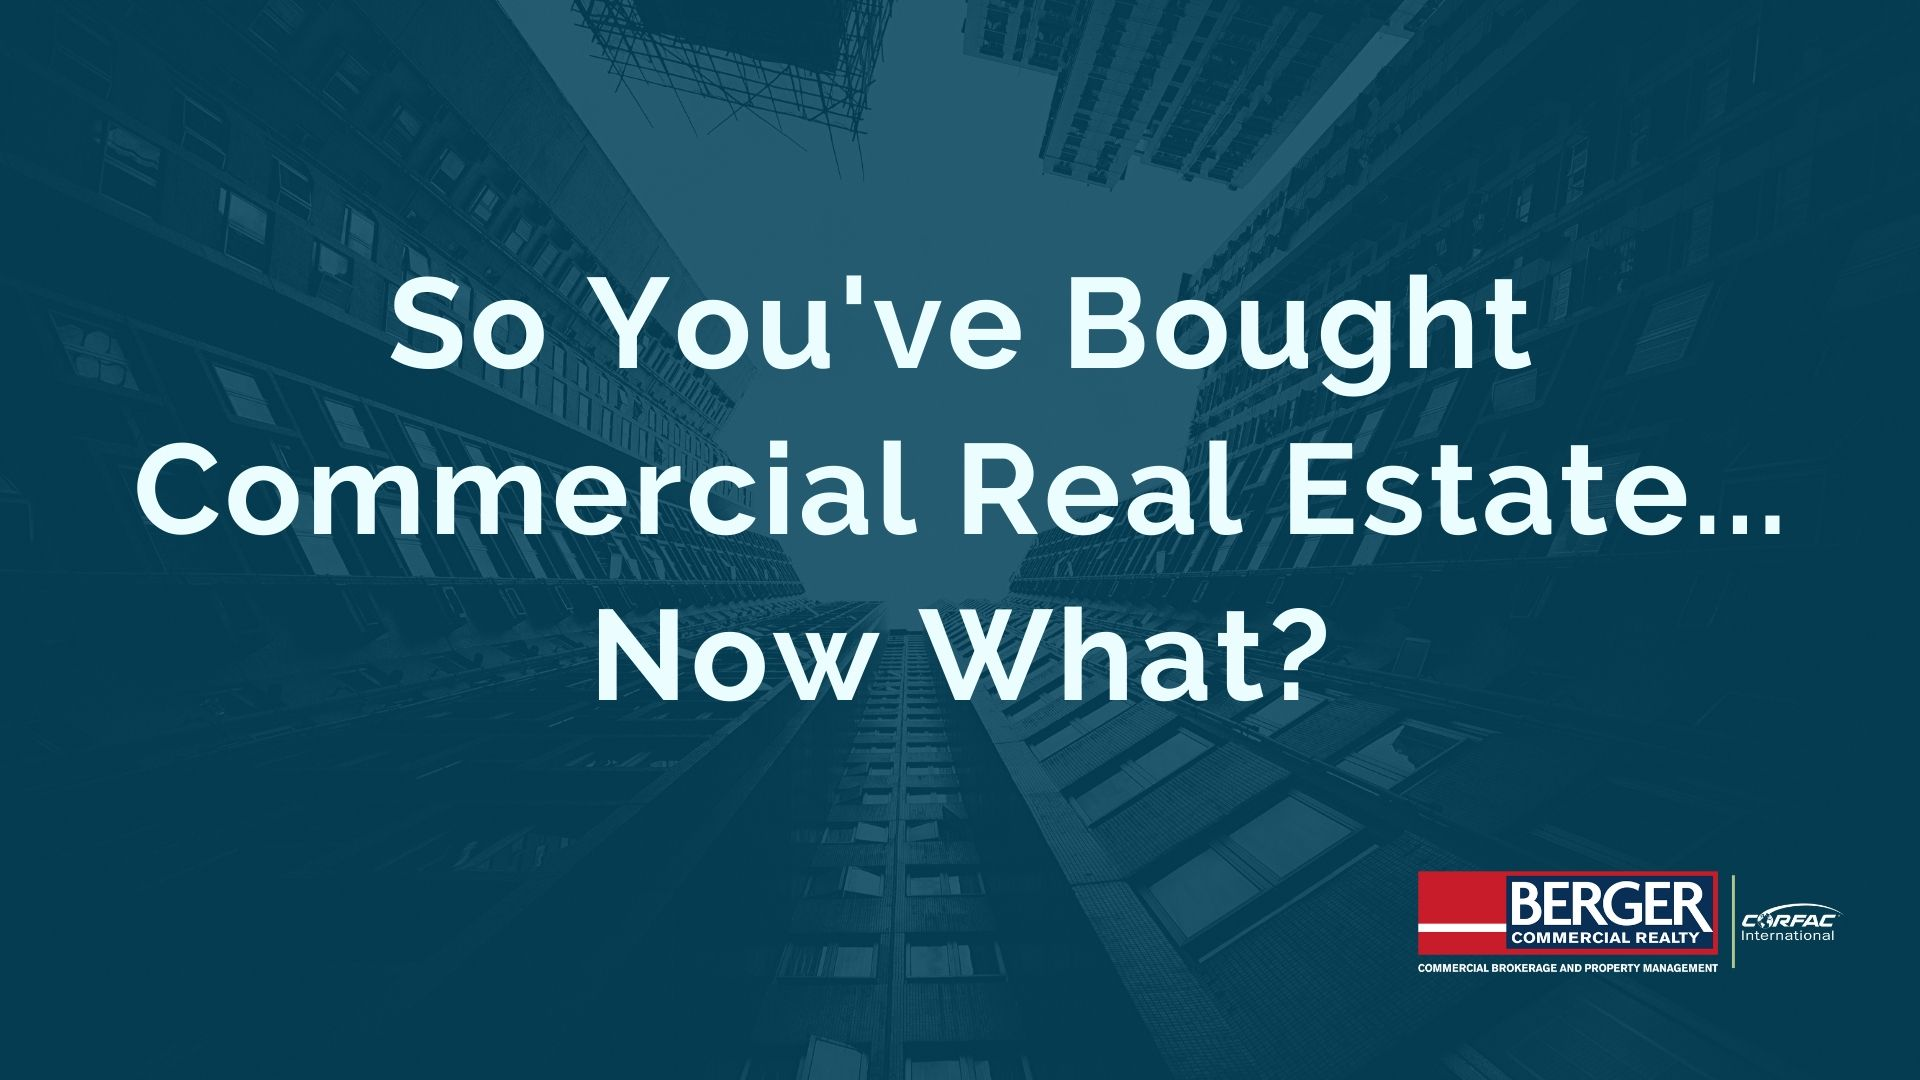 So You've Bought Commercial Real Estate… Now What?